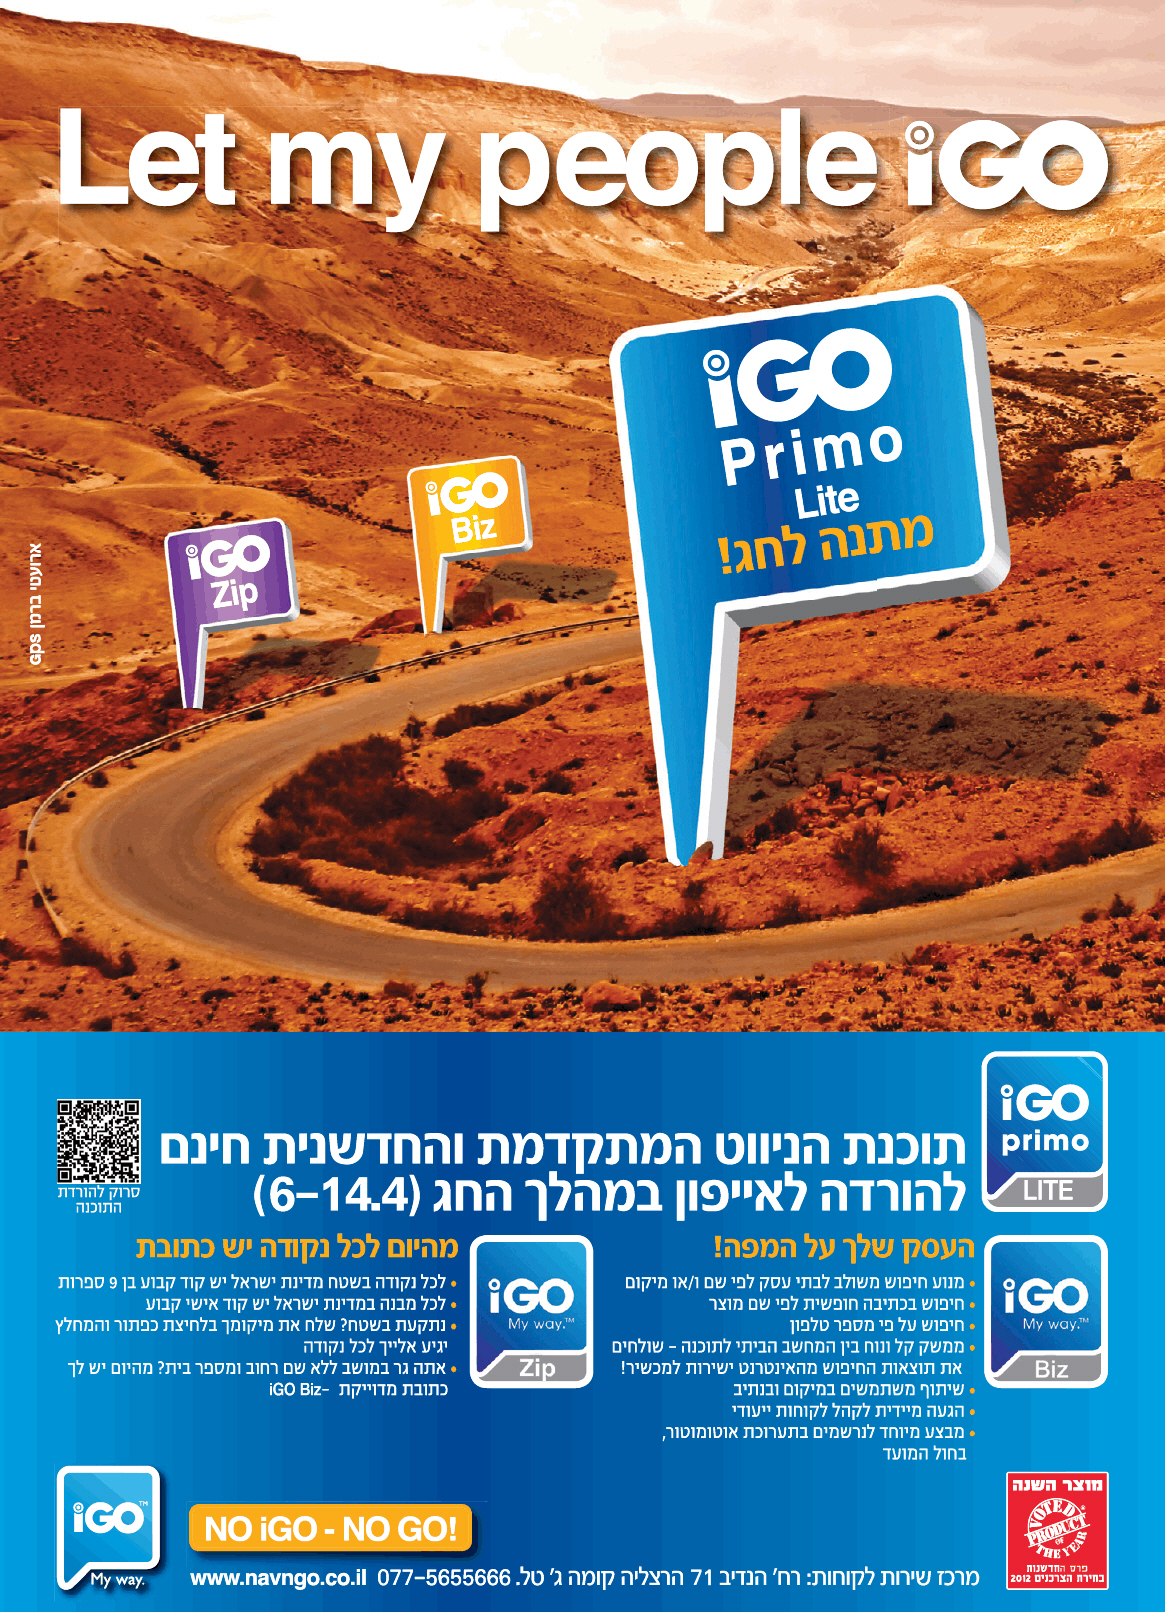 iGO Primo Light בחינם